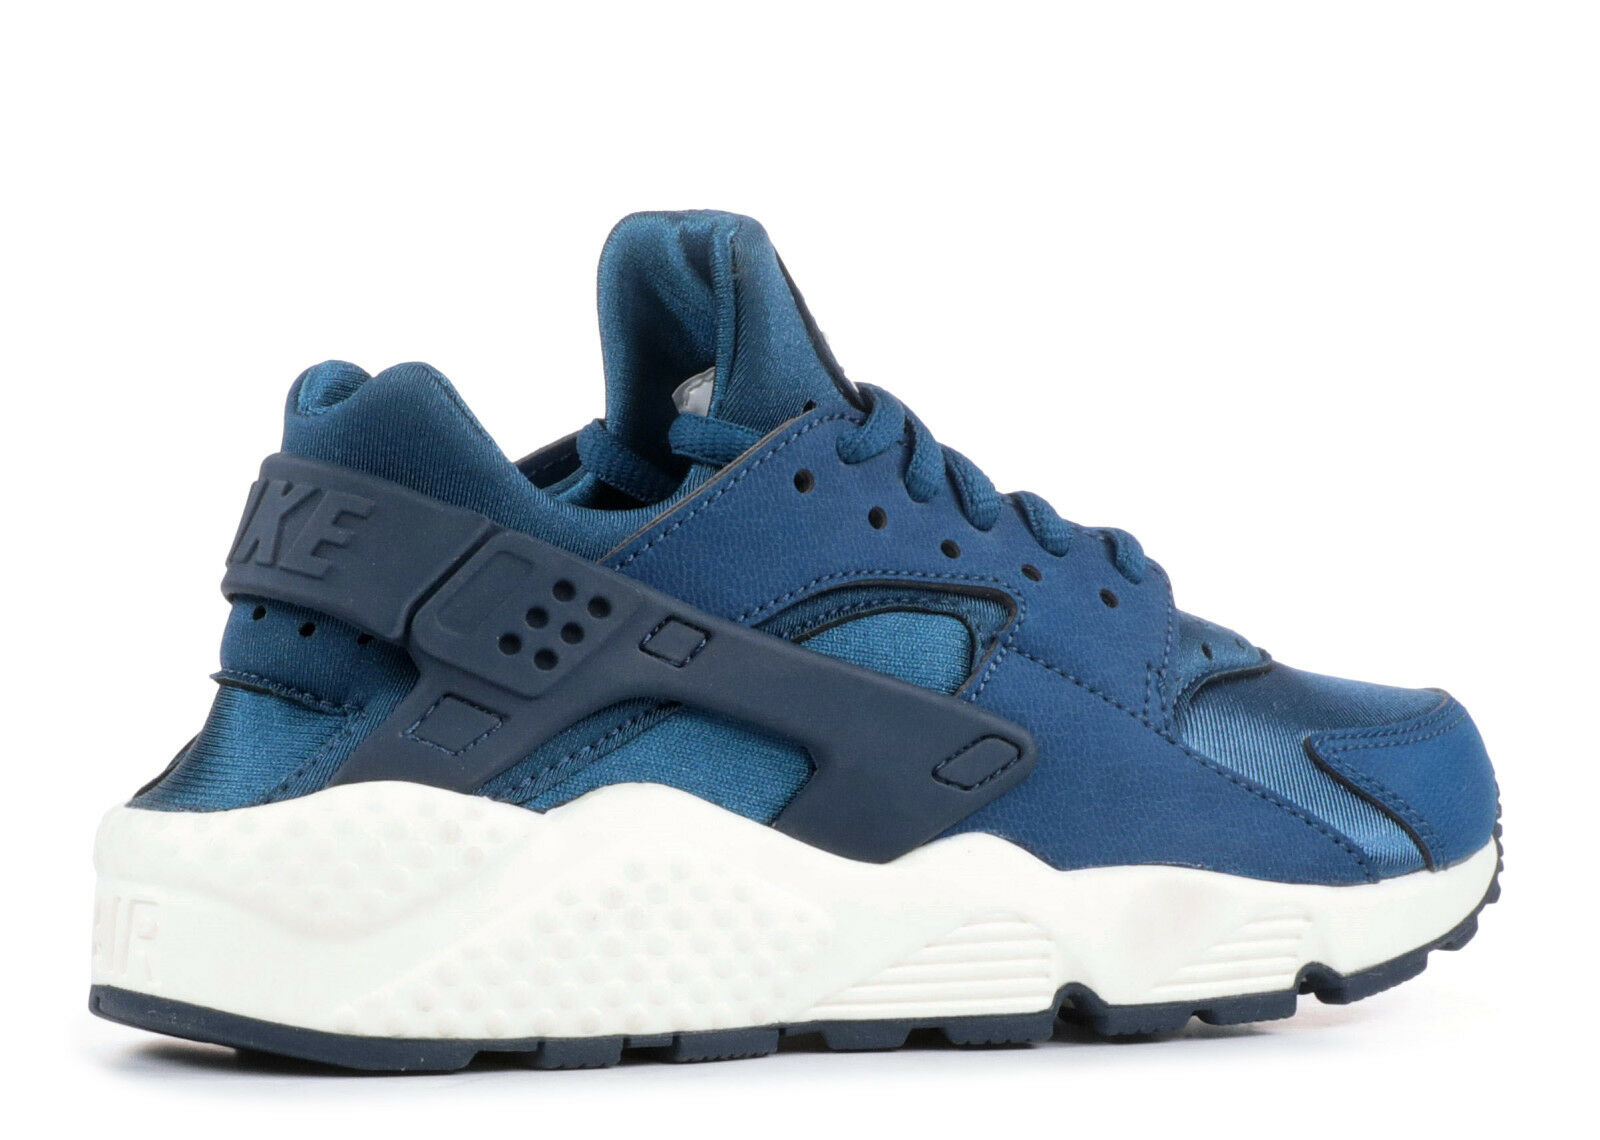 NIKE WOMAN AIR HUARACHE RUN blueE FORCE SAIL [634835-400] US WMNS SZ 6